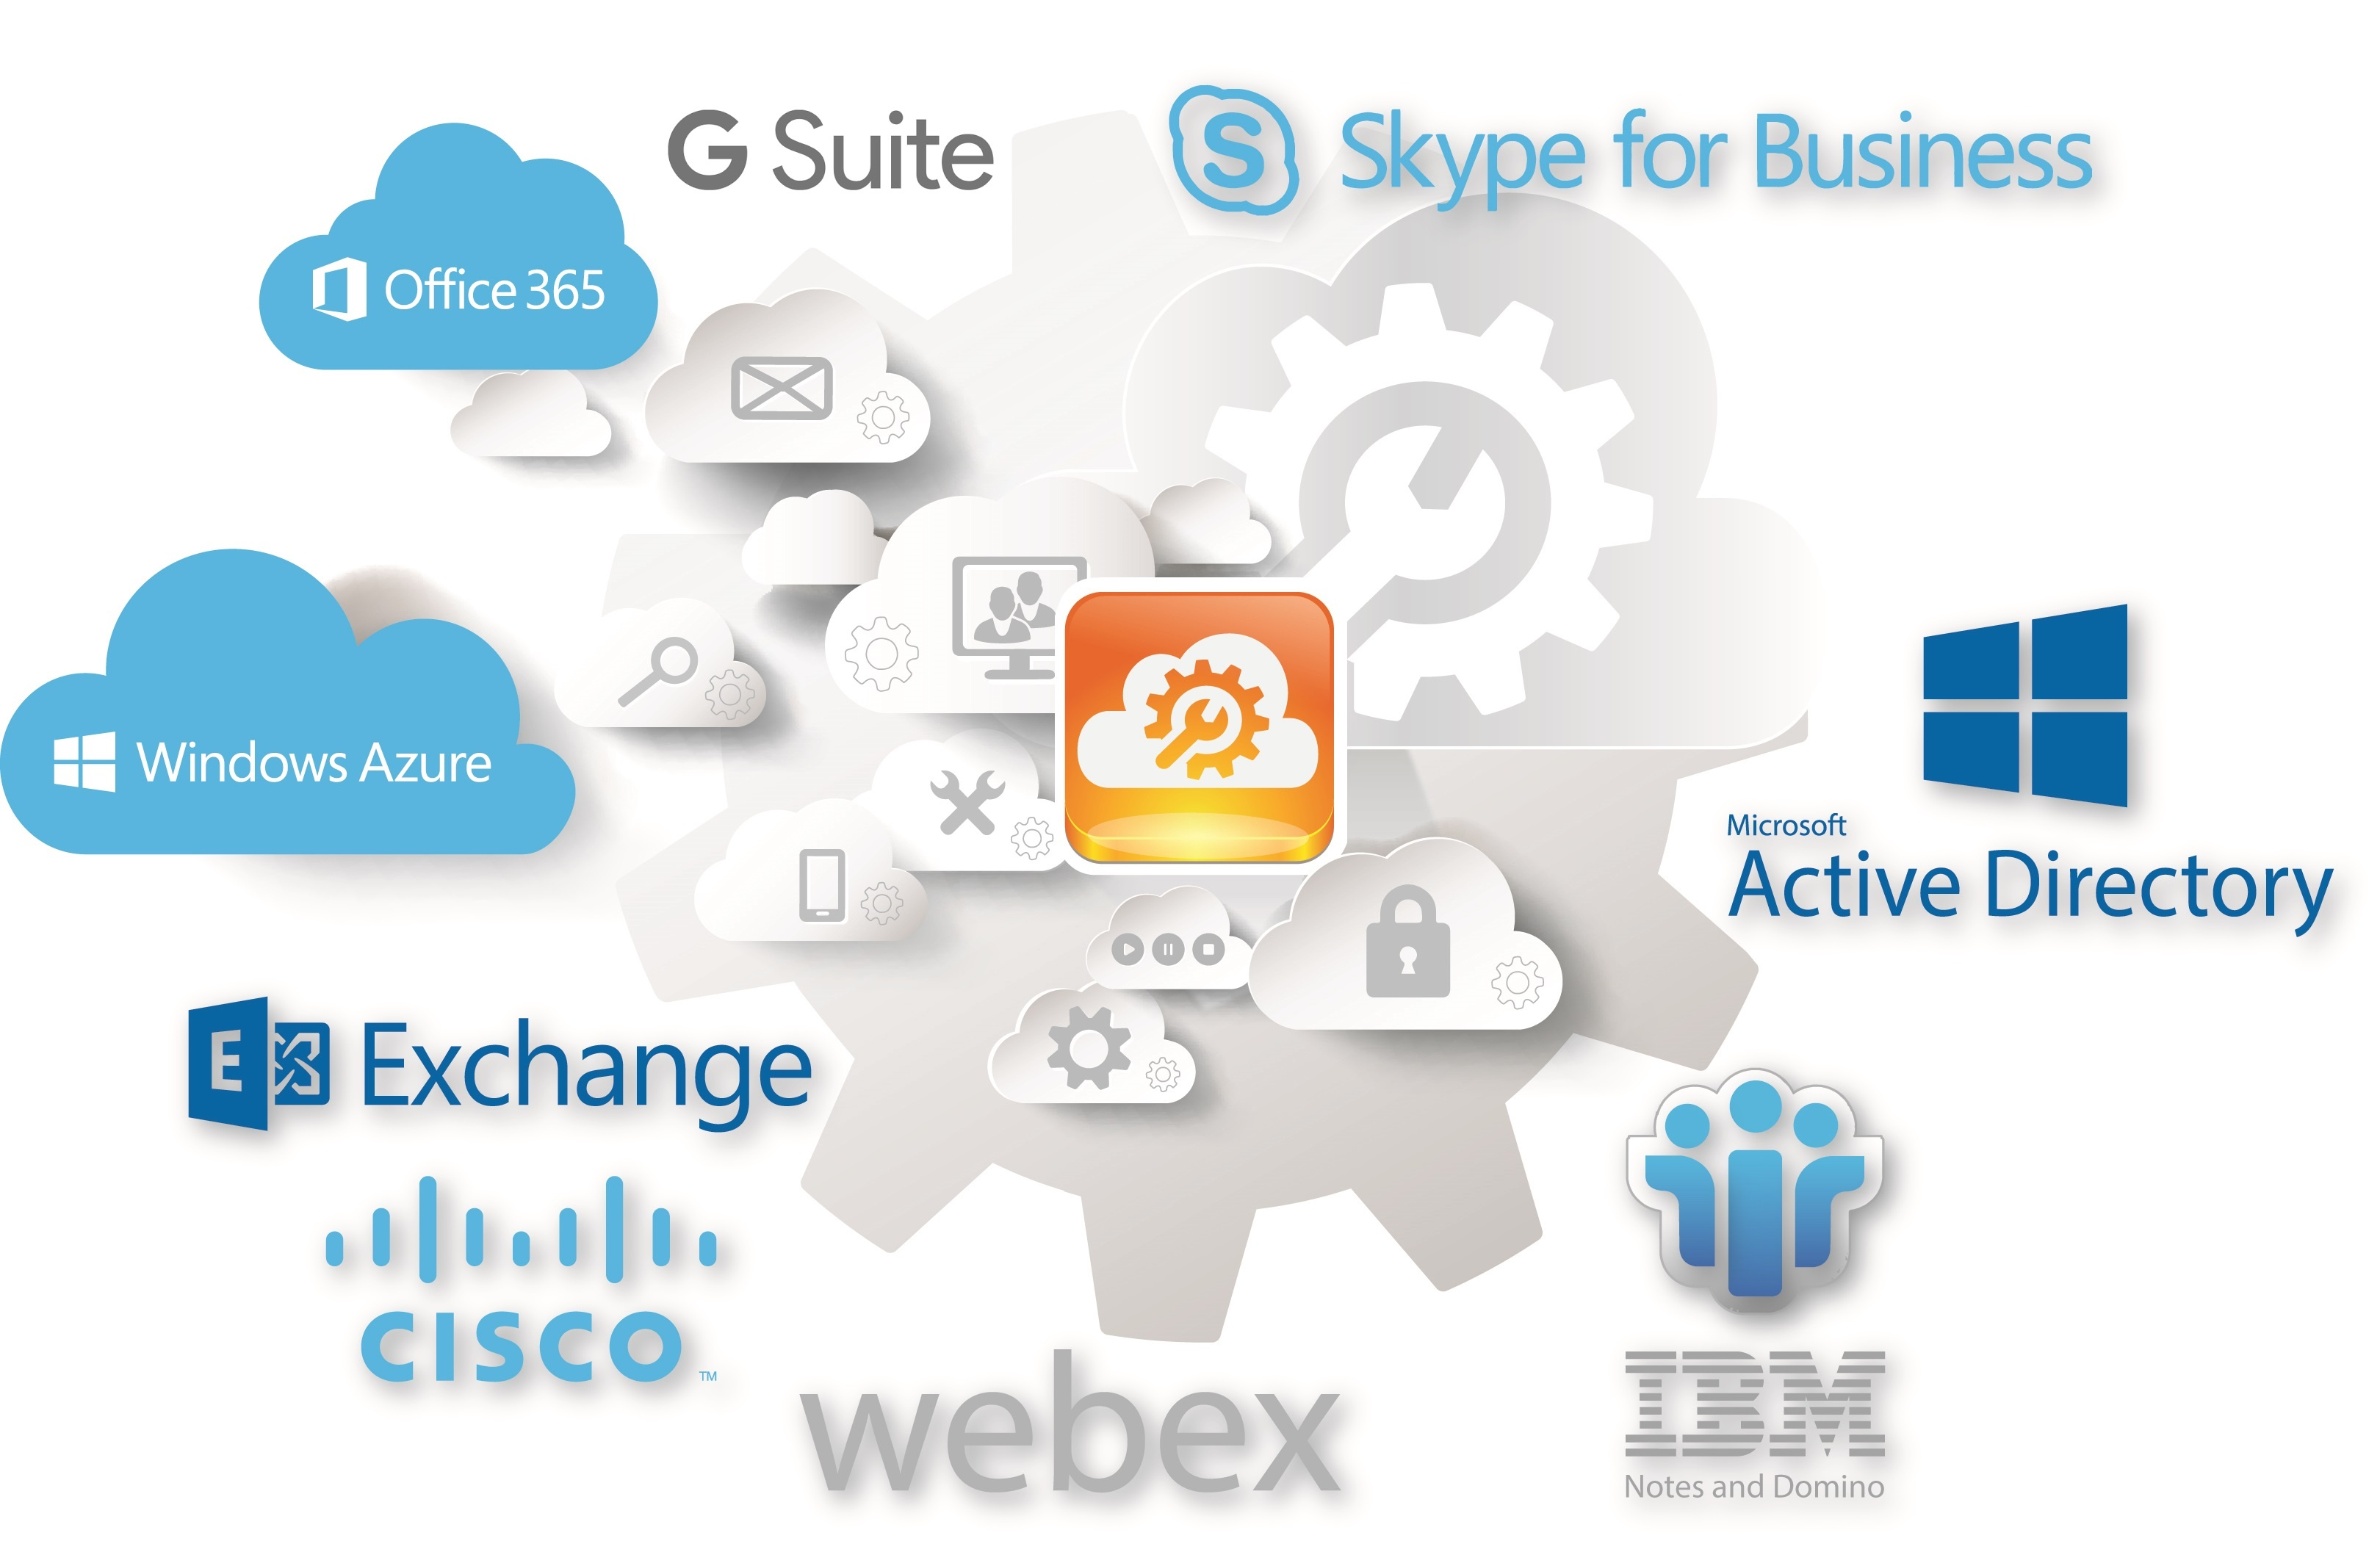 admintool cloud image revised_with G Suite.jpg